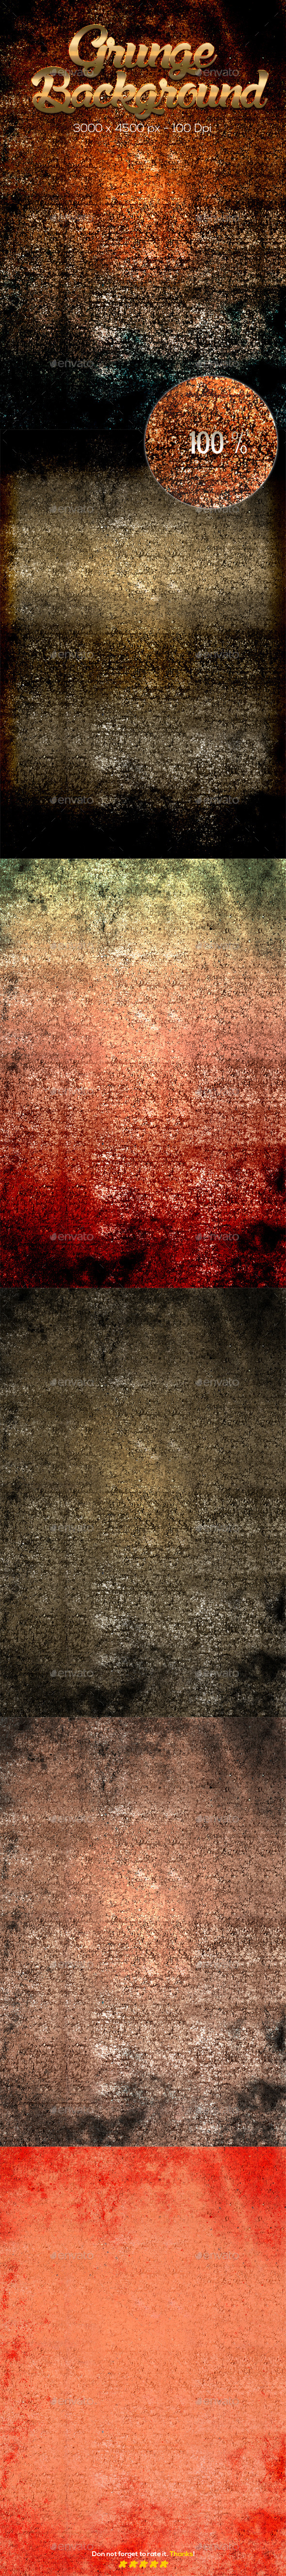 6 Grunge Texture Part 4 - Miscellaneous Backgrounds